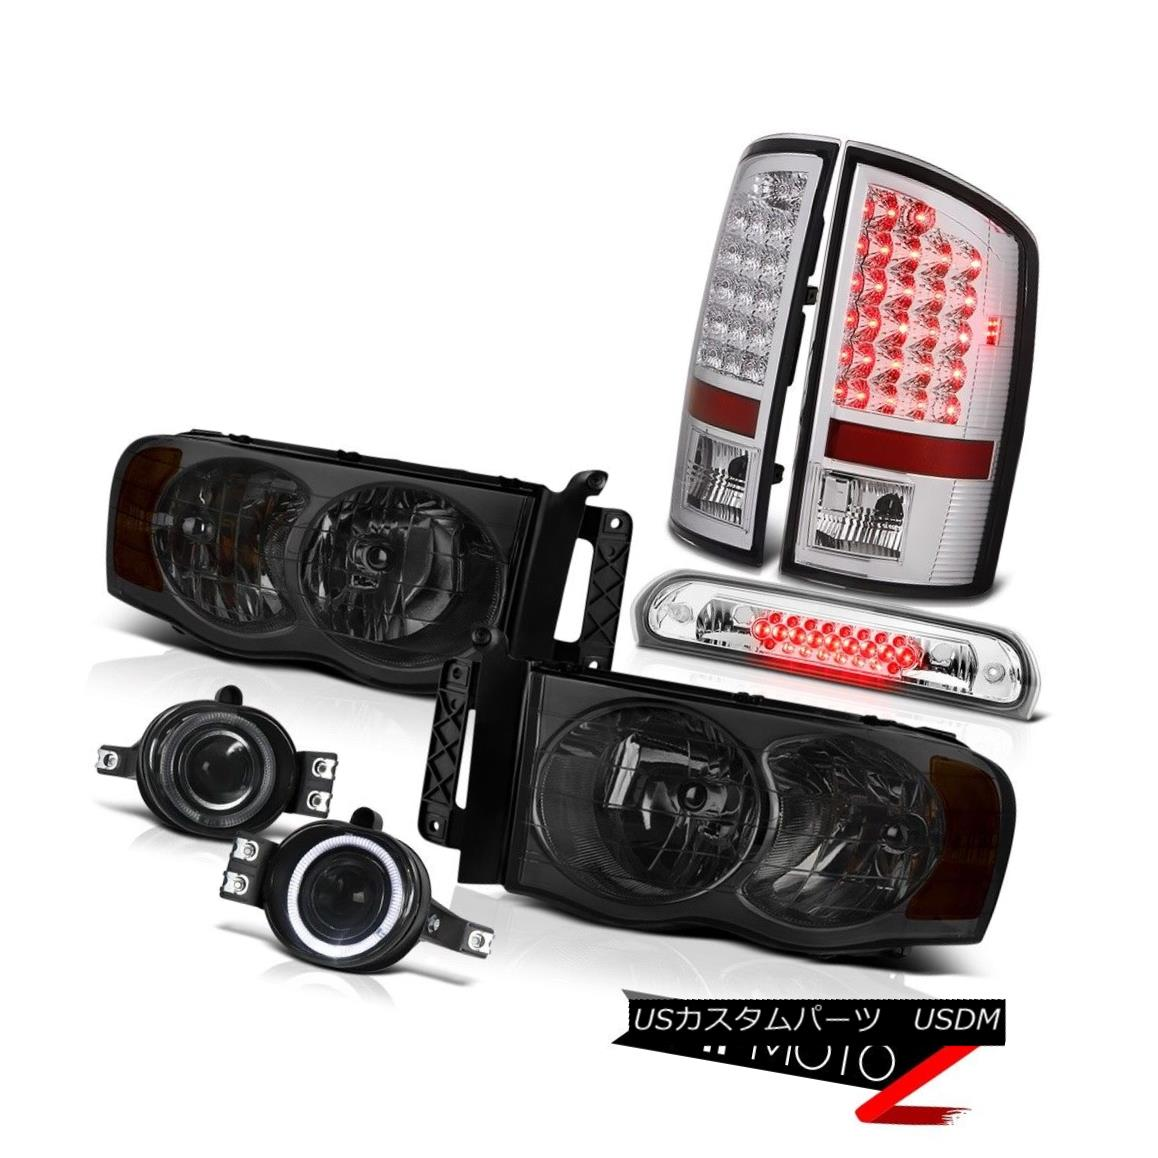 テールライト 02-05 Ram PowerTech PAIR Smoke Headlights LED Tail Lights Bumper Fog Brake Cargo 02-05 Ram PowerTech PAIRスモークヘッドライトLEDテールライトバンパーフォグブレーキカーゴ